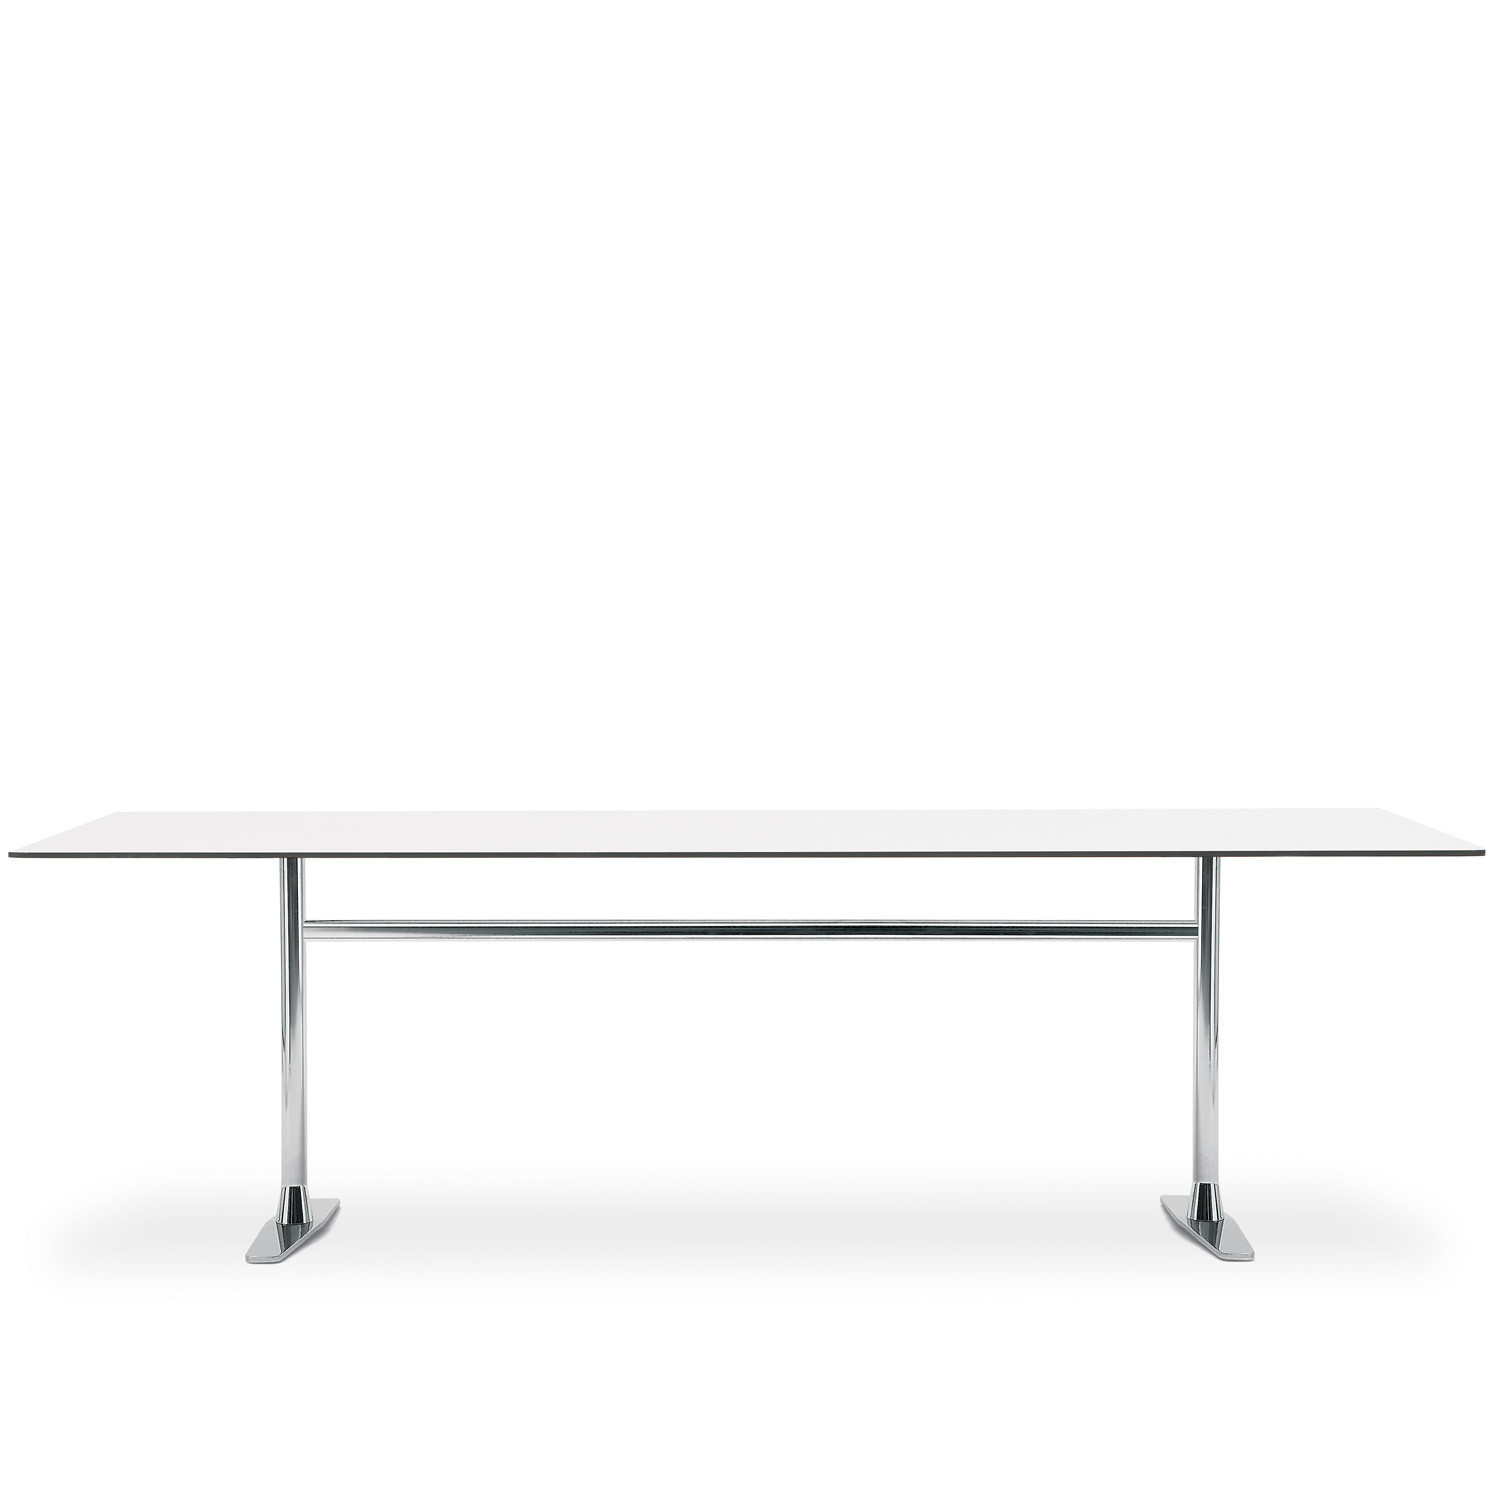 Propeller Meeting Tables by Offecct